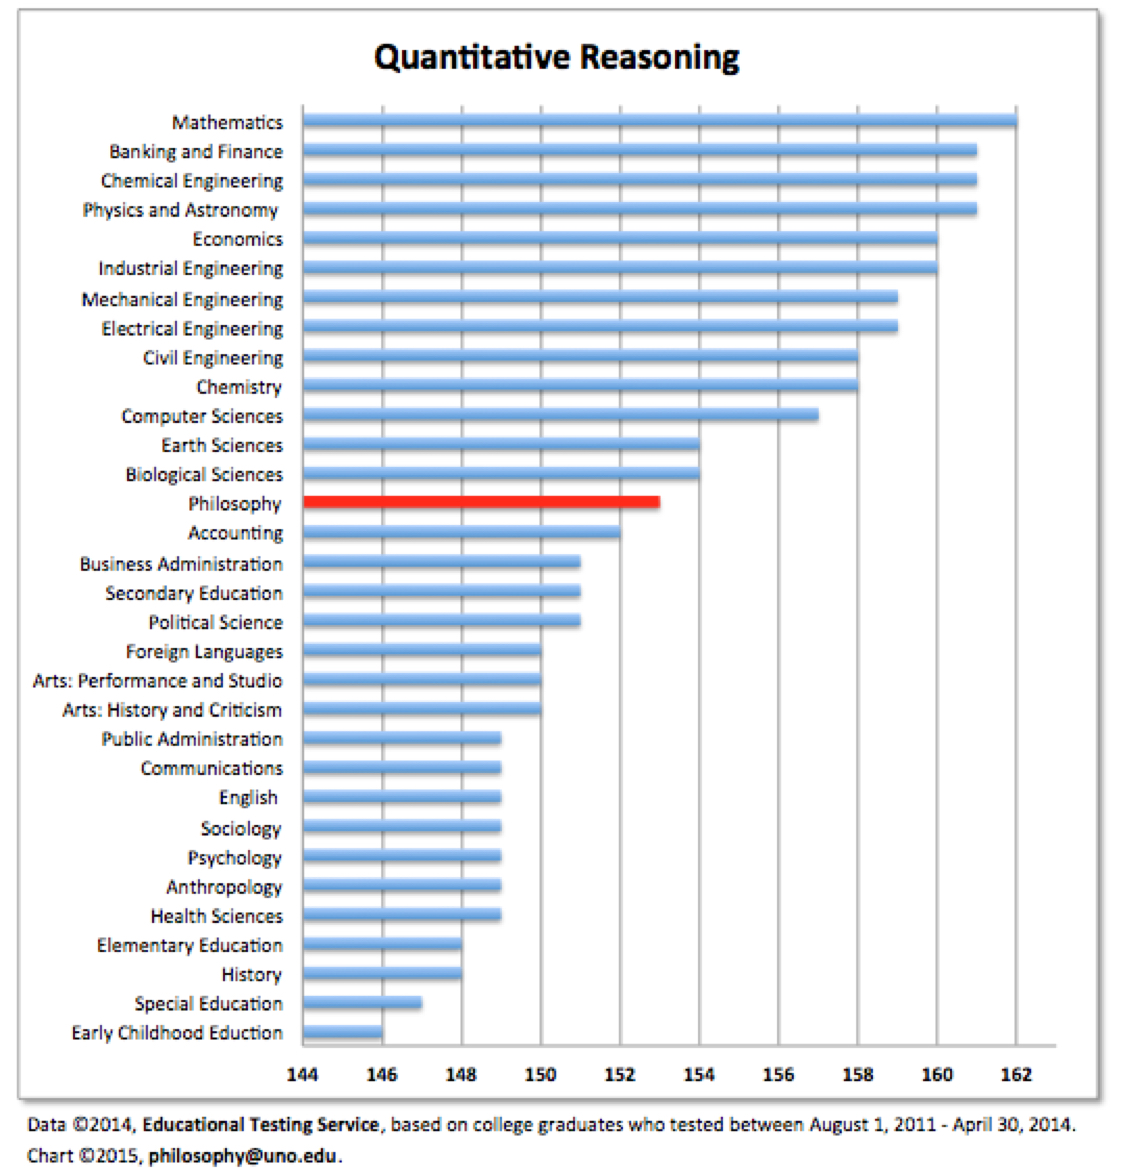 value of philosophy charts and graphs daily nous the gre is the standardized test used to assess applicants to graduate school in most disciplines